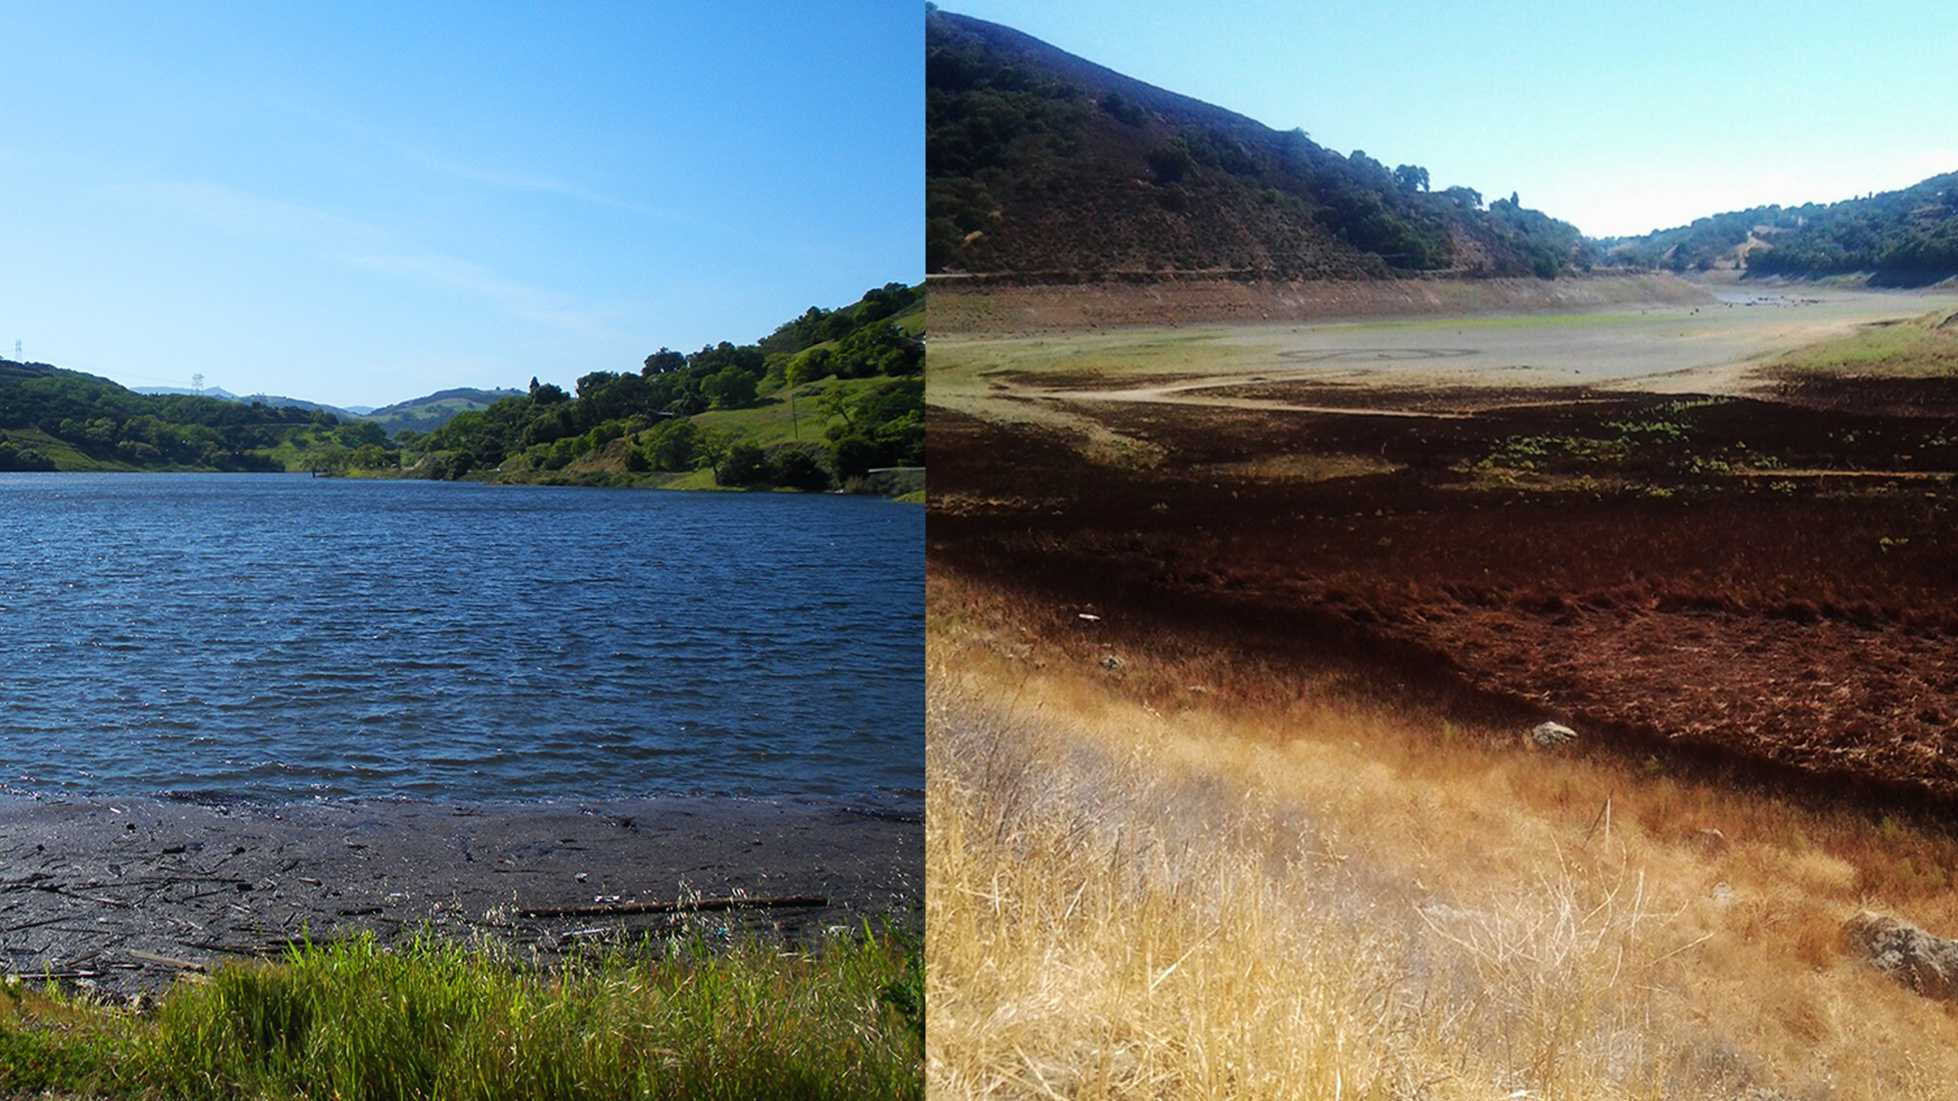 The Chesbro Reservoir is seen in April 2010 on the left, and in October 2014 on the right.